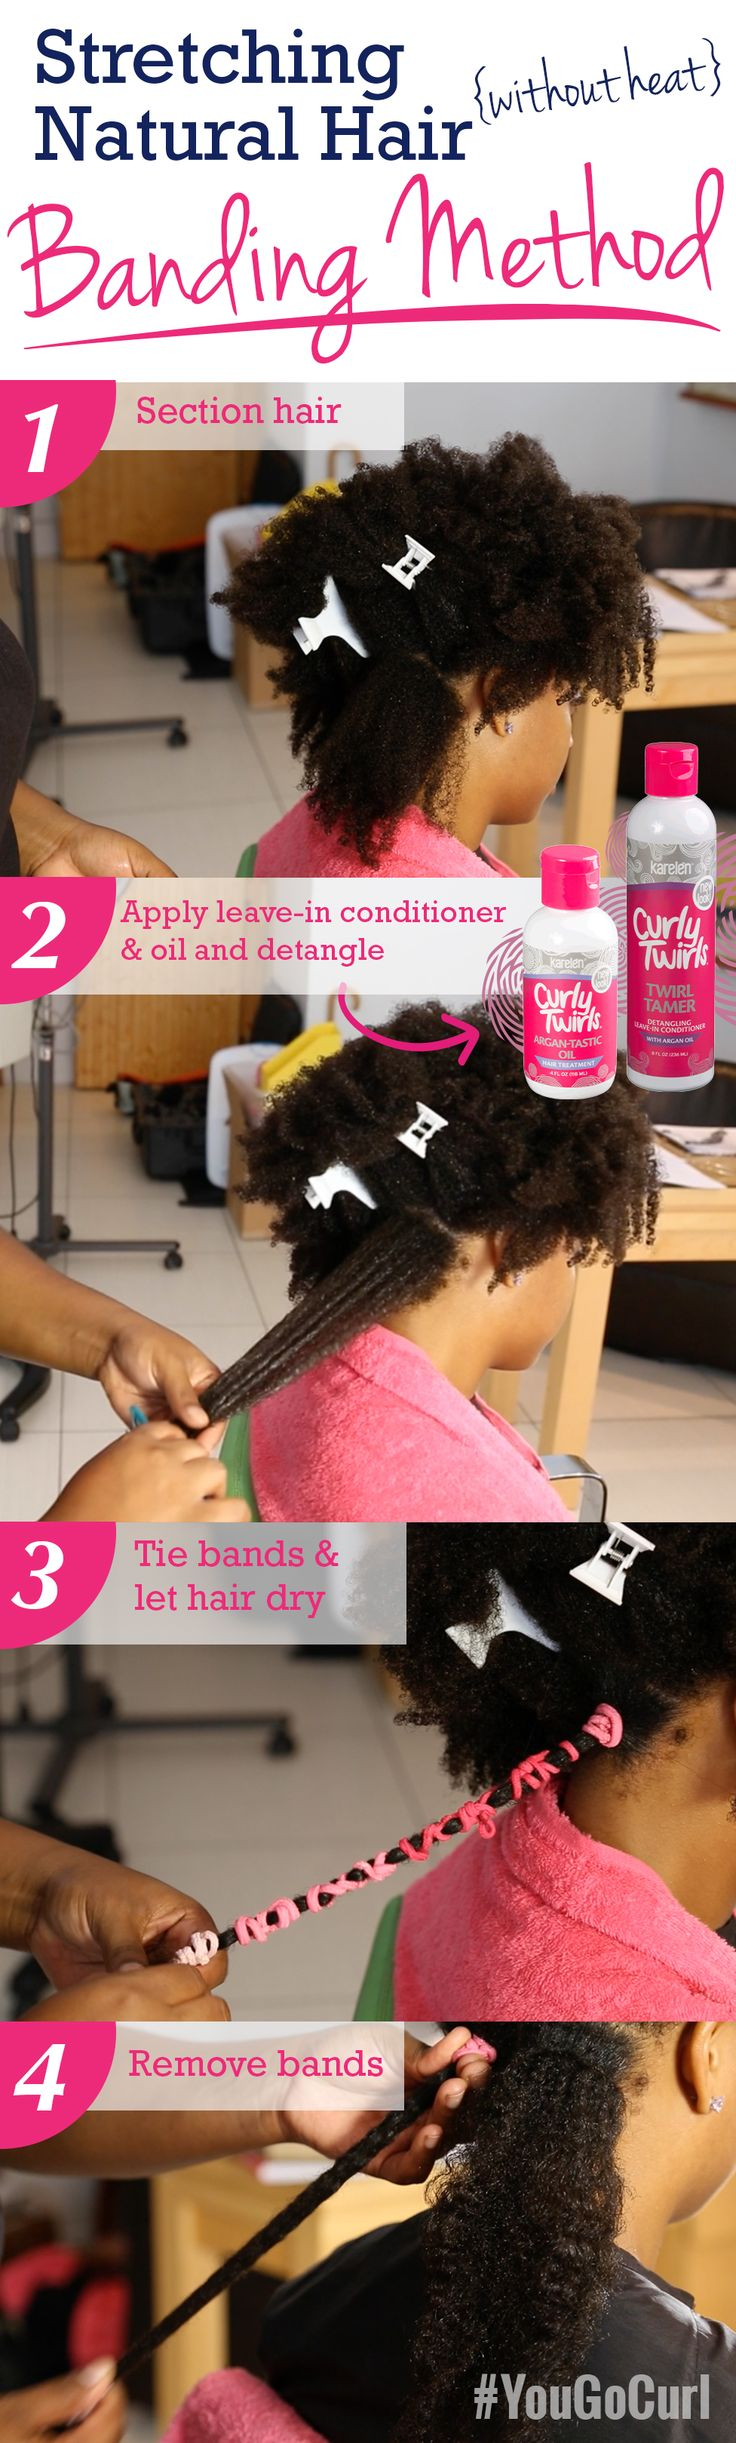 Stretching Natural Hair | Banding Method